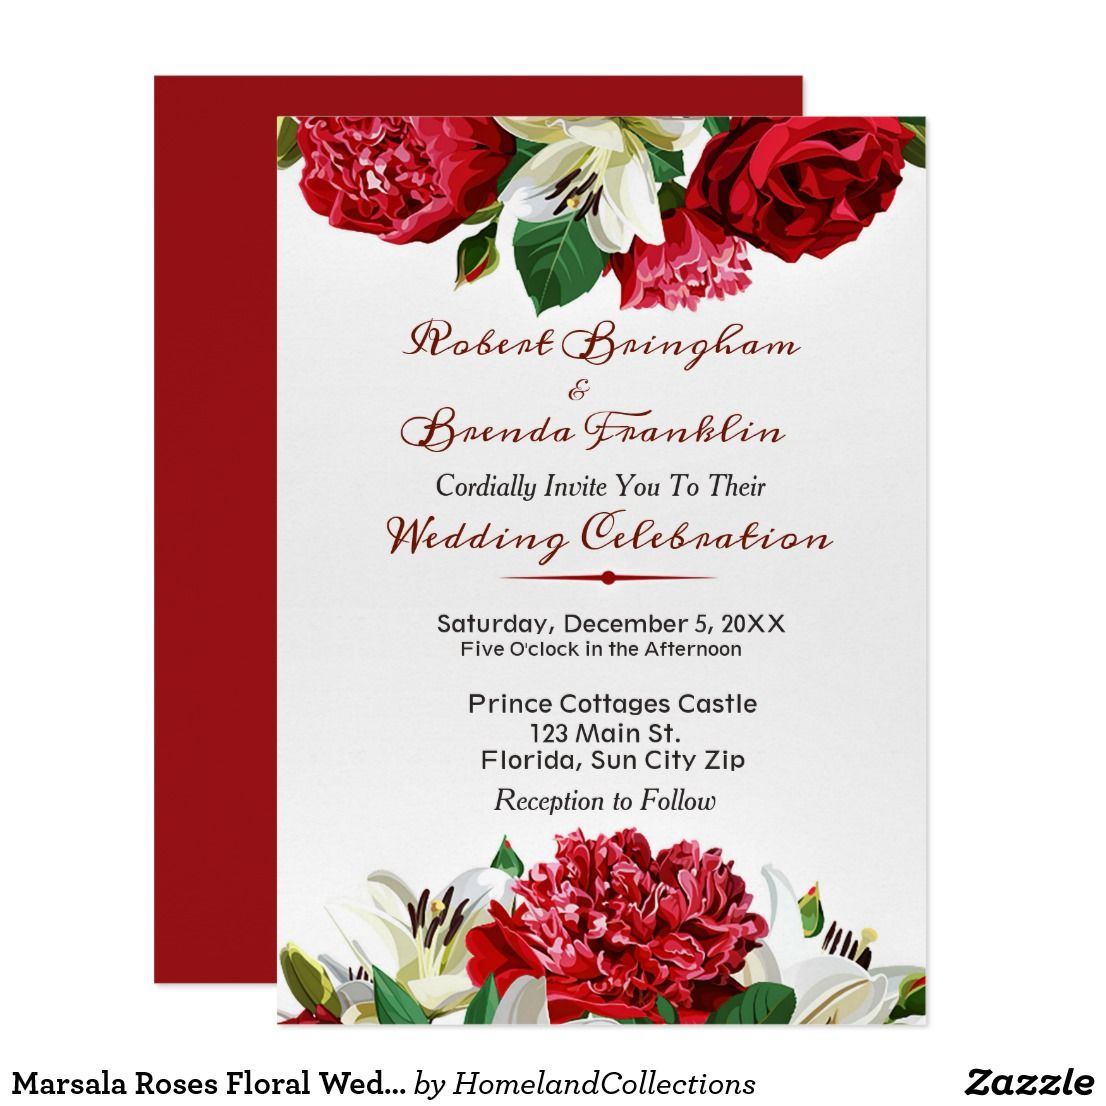 Marsala Roses Floral Wedding Invitations | Merry Christmas, Happy ...